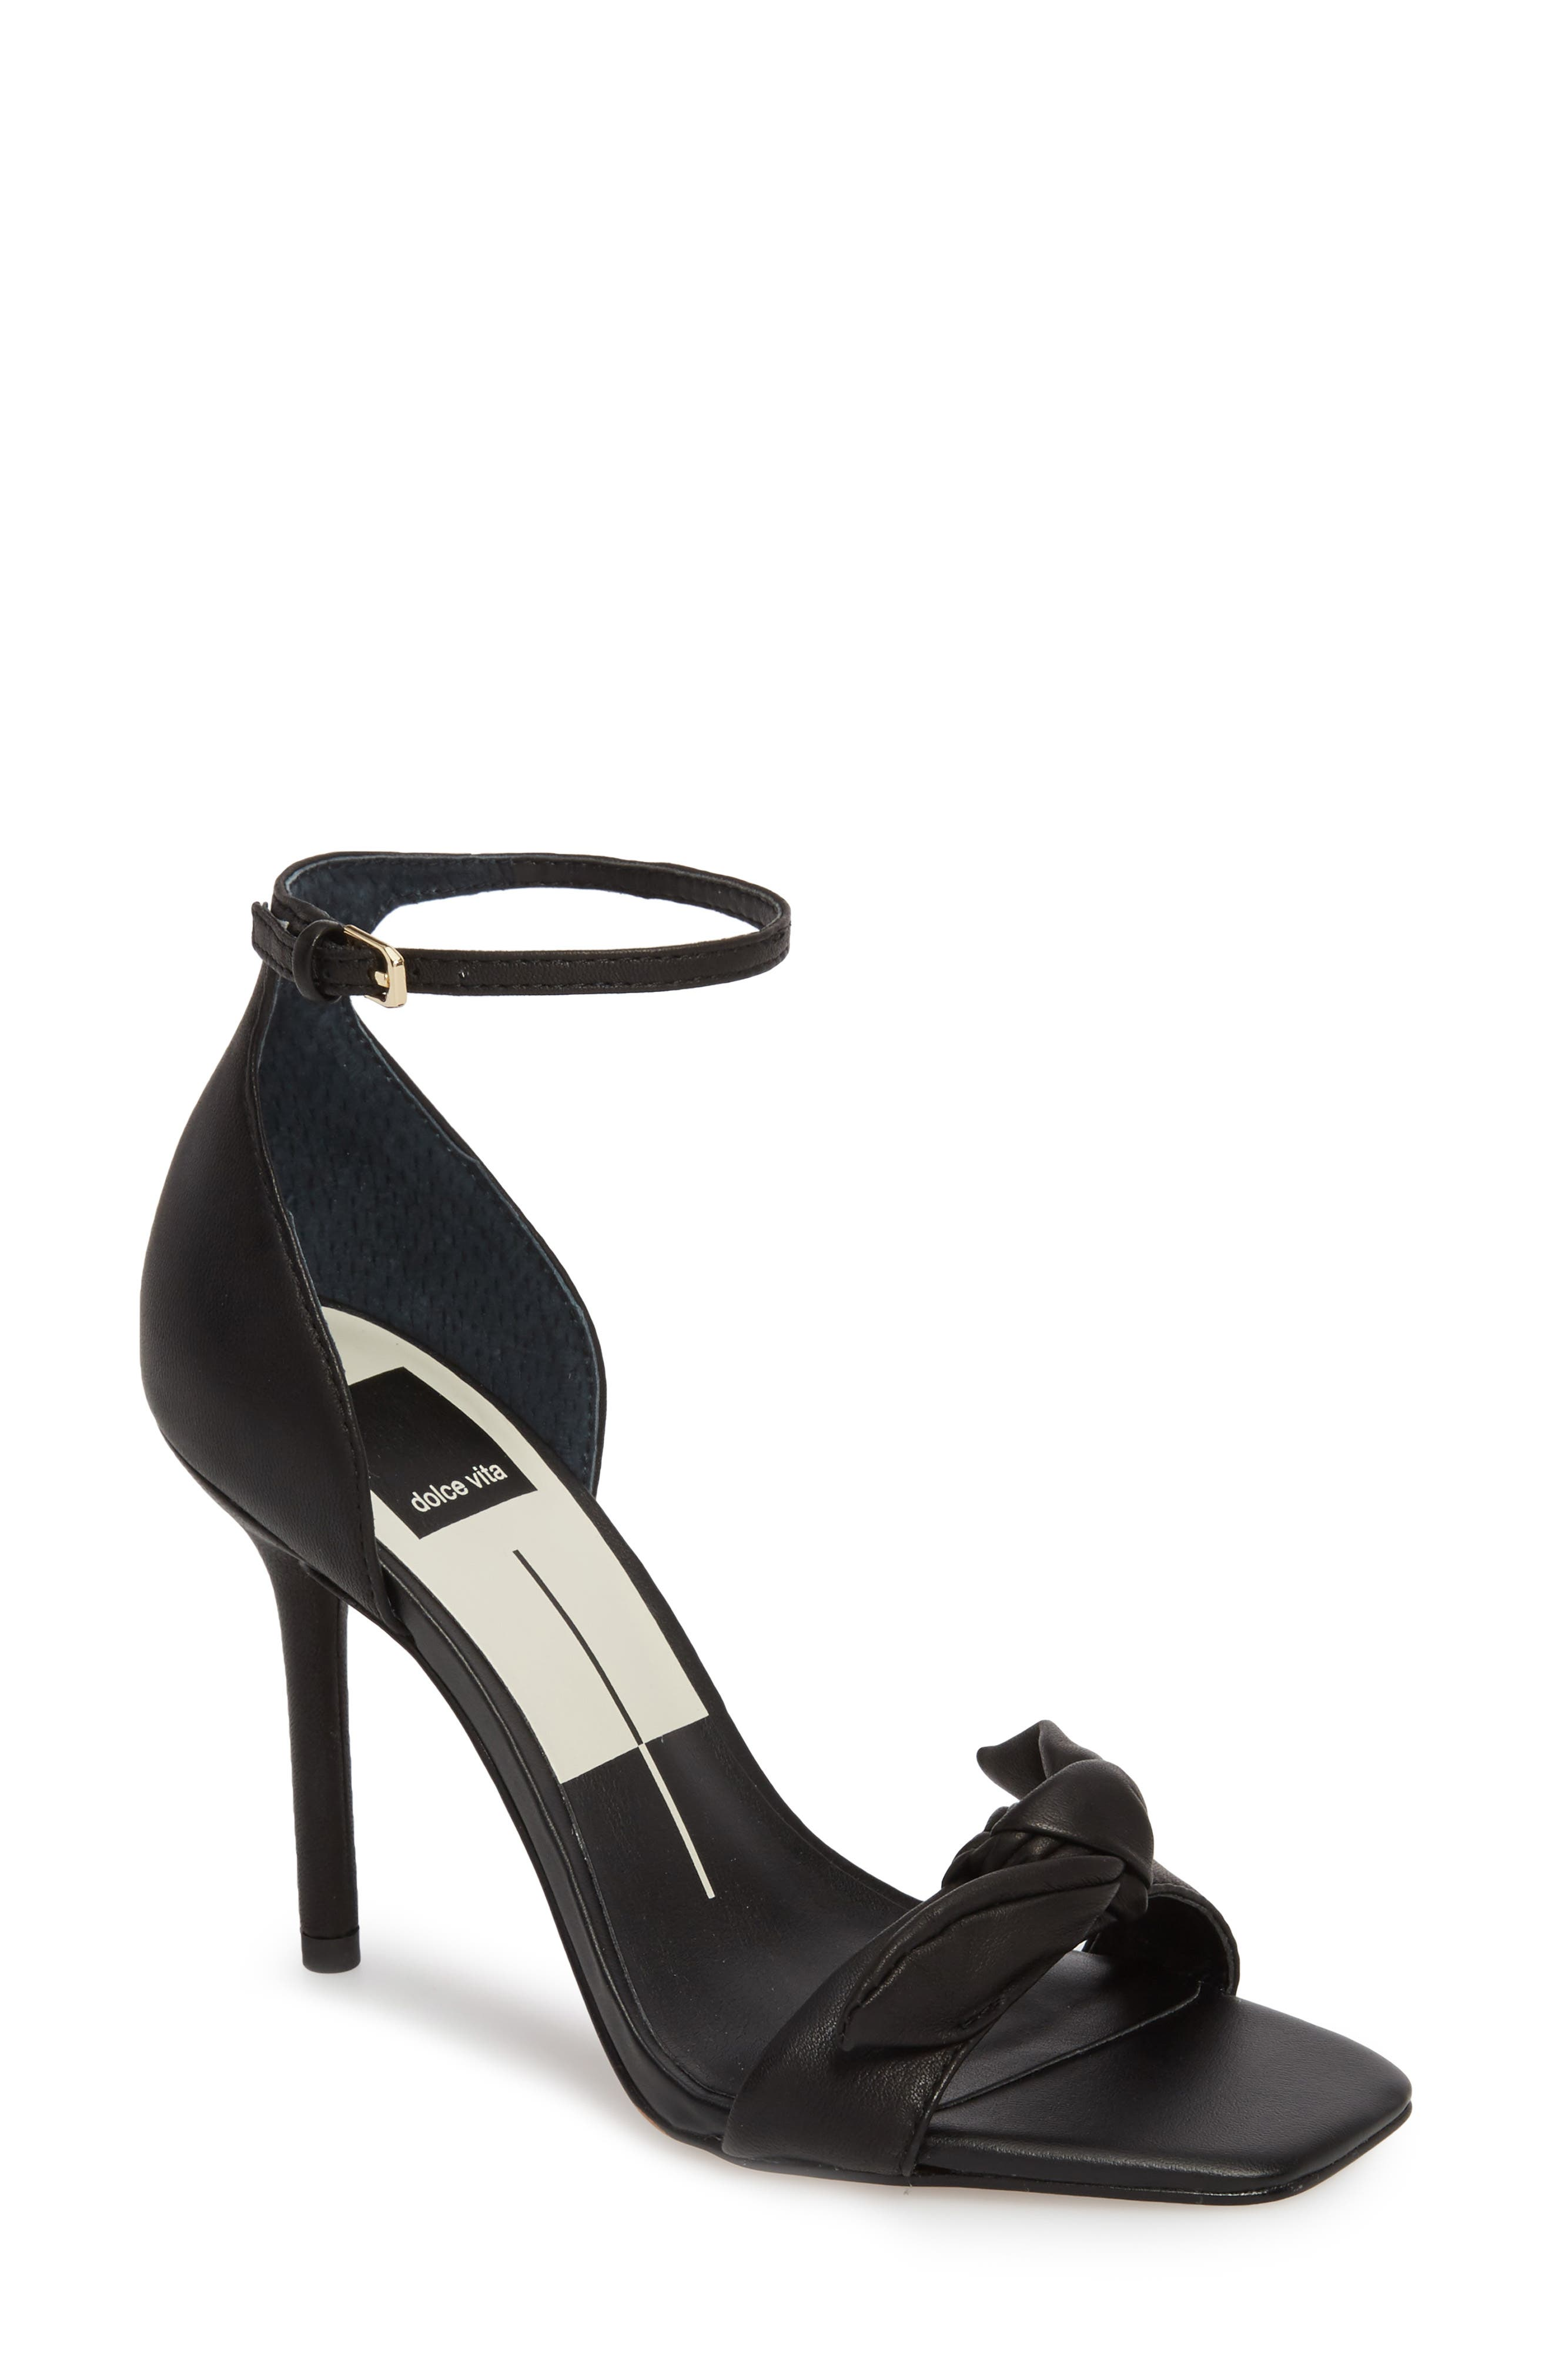 Helana Knotted Sandal by Dolce Vita